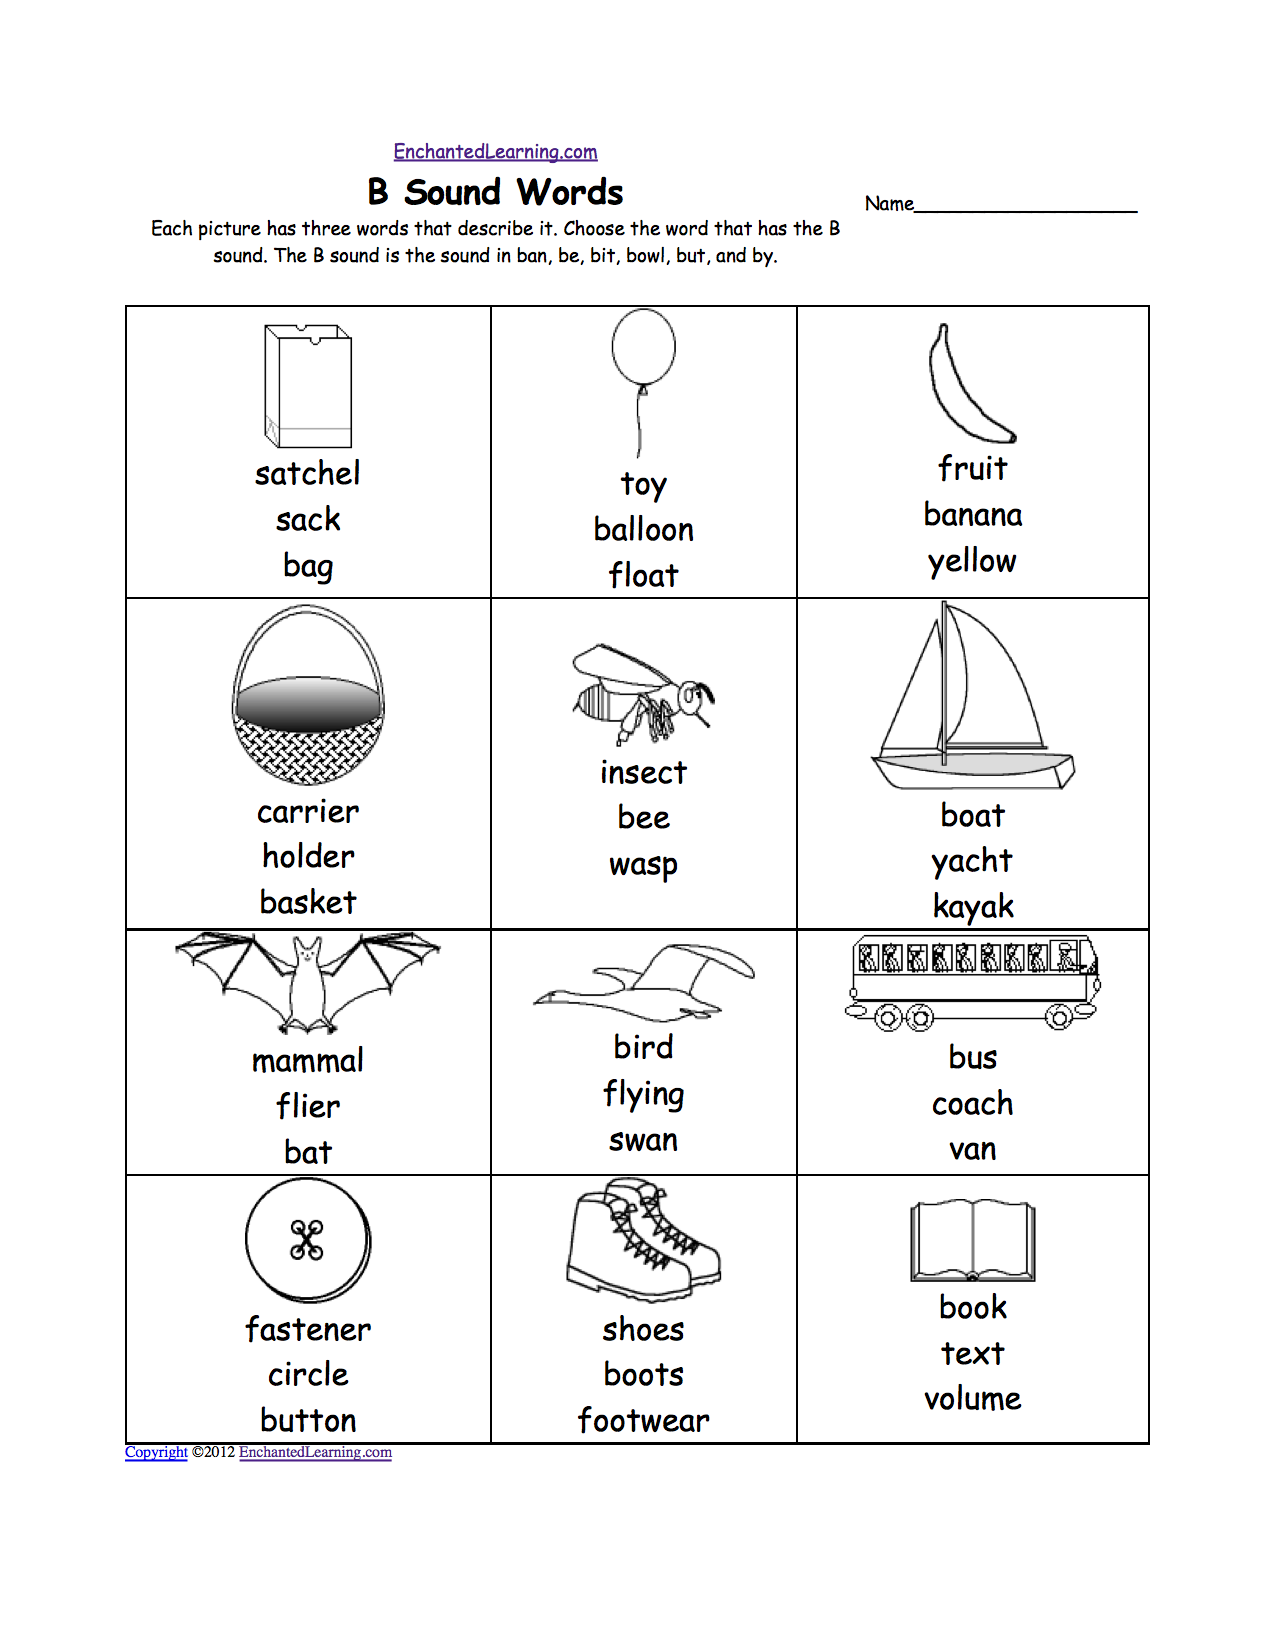 Weirdmailus  Surprising Phonics Worksheets Multiple Choice Worksheets To Print  With Lovable Quotbquot Sound Phonics Worksheet Multiple Choice Each Picture Has Three Words That Describe It Choose The Word That Has A Quotbquot Sound The Quotbquot Sound Is The Sound  With Charming Multiplication Worksheet Grade  Also Spelling Word Worksheet Maker In Addition Worksheets For Elementary And Subtraction Word Problems Worksheet As Well As Shapes In Spanish Worksheet Additionally Finding Common Denominator Worksheets From Enchantedlearningcom With Weirdmailus  Lovable Phonics Worksheets Multiple Choice Worksheets To Print  With Charming Quotbquot Sound Phonics Worksheet Multiple Choice Each Picture Has Three Words That Describe It Choose The Word That Has A Quotbquot Sound The Quotbquot Sound Is The Sound  And Surprising Multiplication Worksheet Grade  Also Spelling Word Worksheet Maker In Addition Worksheets For Elementary From Enchantedlearningcom